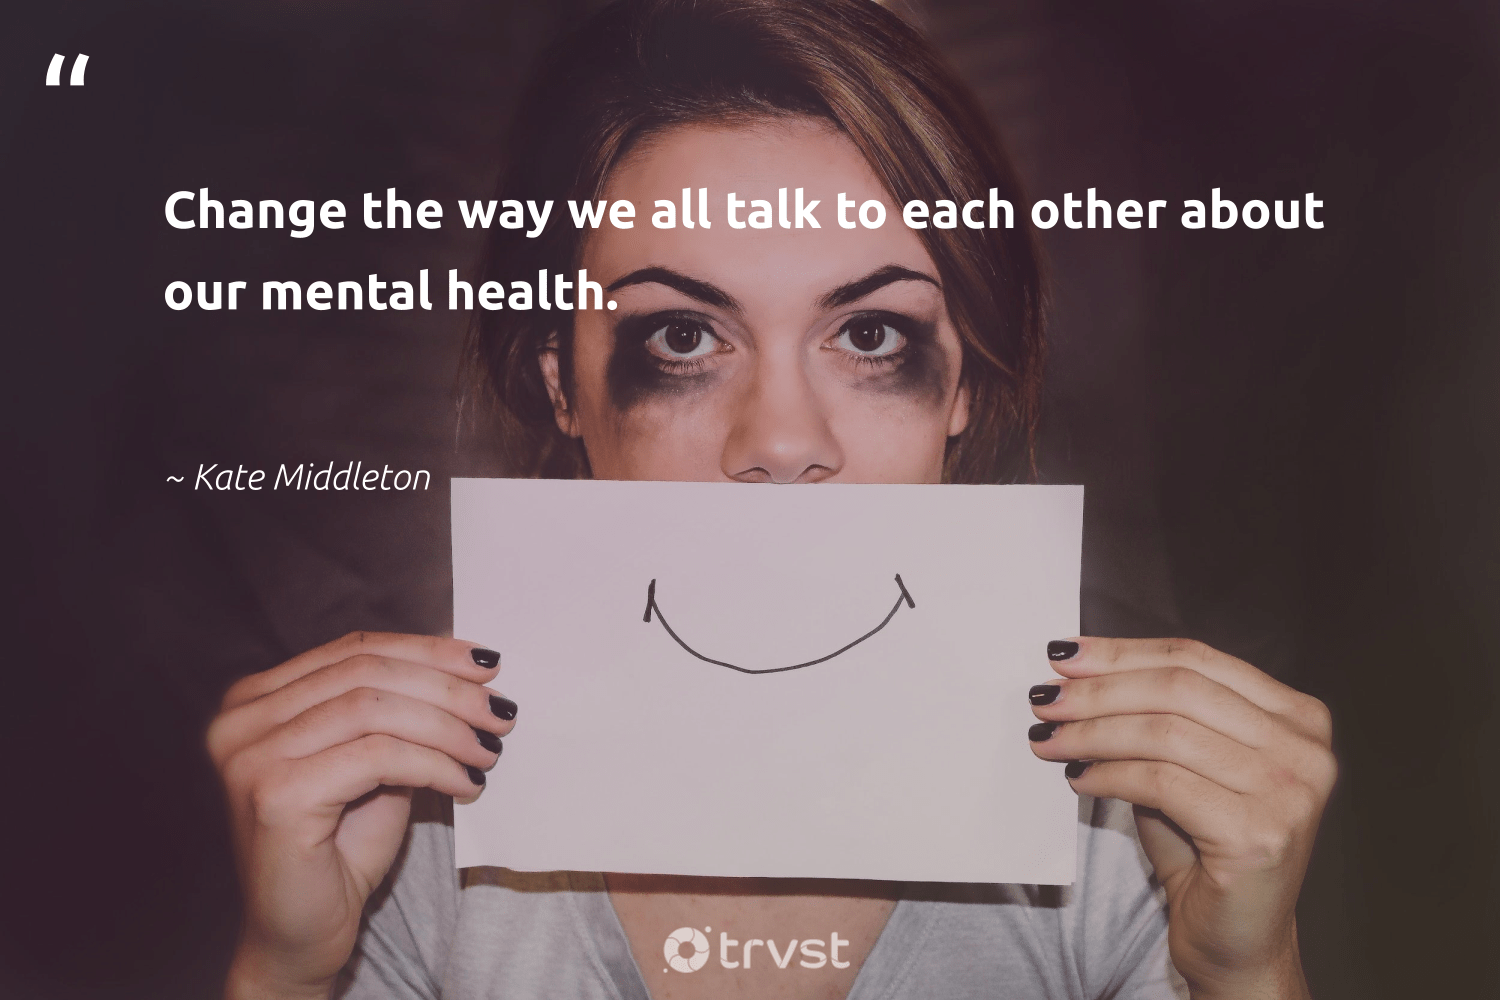 """Change the way we all talk to each other about our mental health.""  - Kate Middleton #trvst #quotes #mentalhealth #health #mentalhealthmatters #togetherwecan #mindset #changetheworld #anxiety #nevergiveup #changemakers #takeaction"